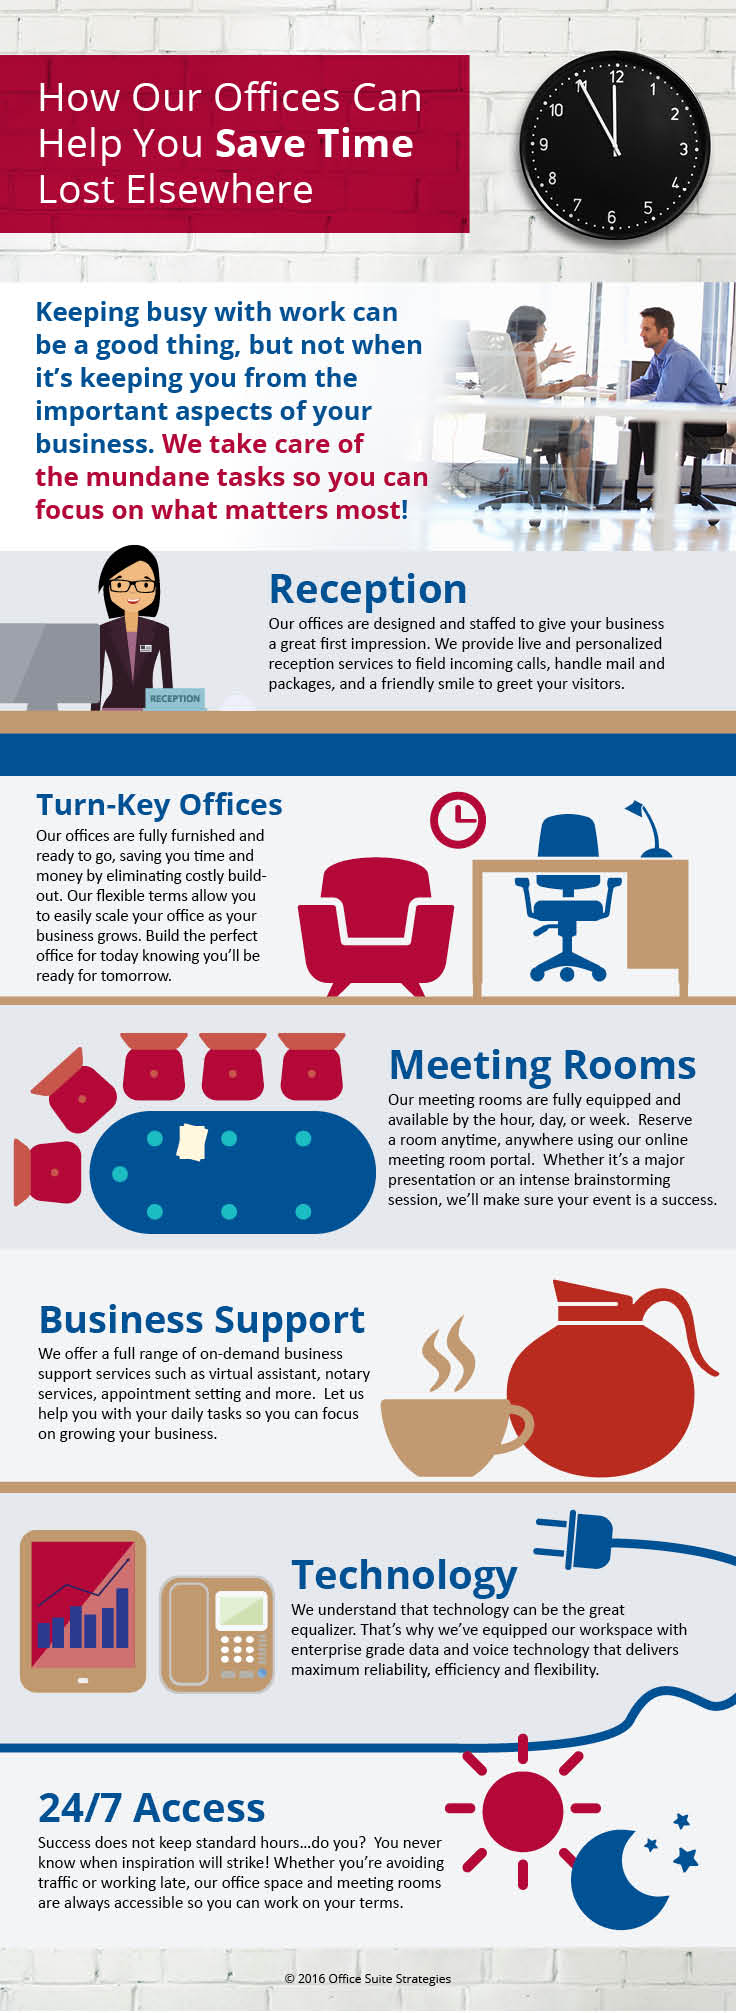 Saving Time For Your Business With Our Lakeside Office Services